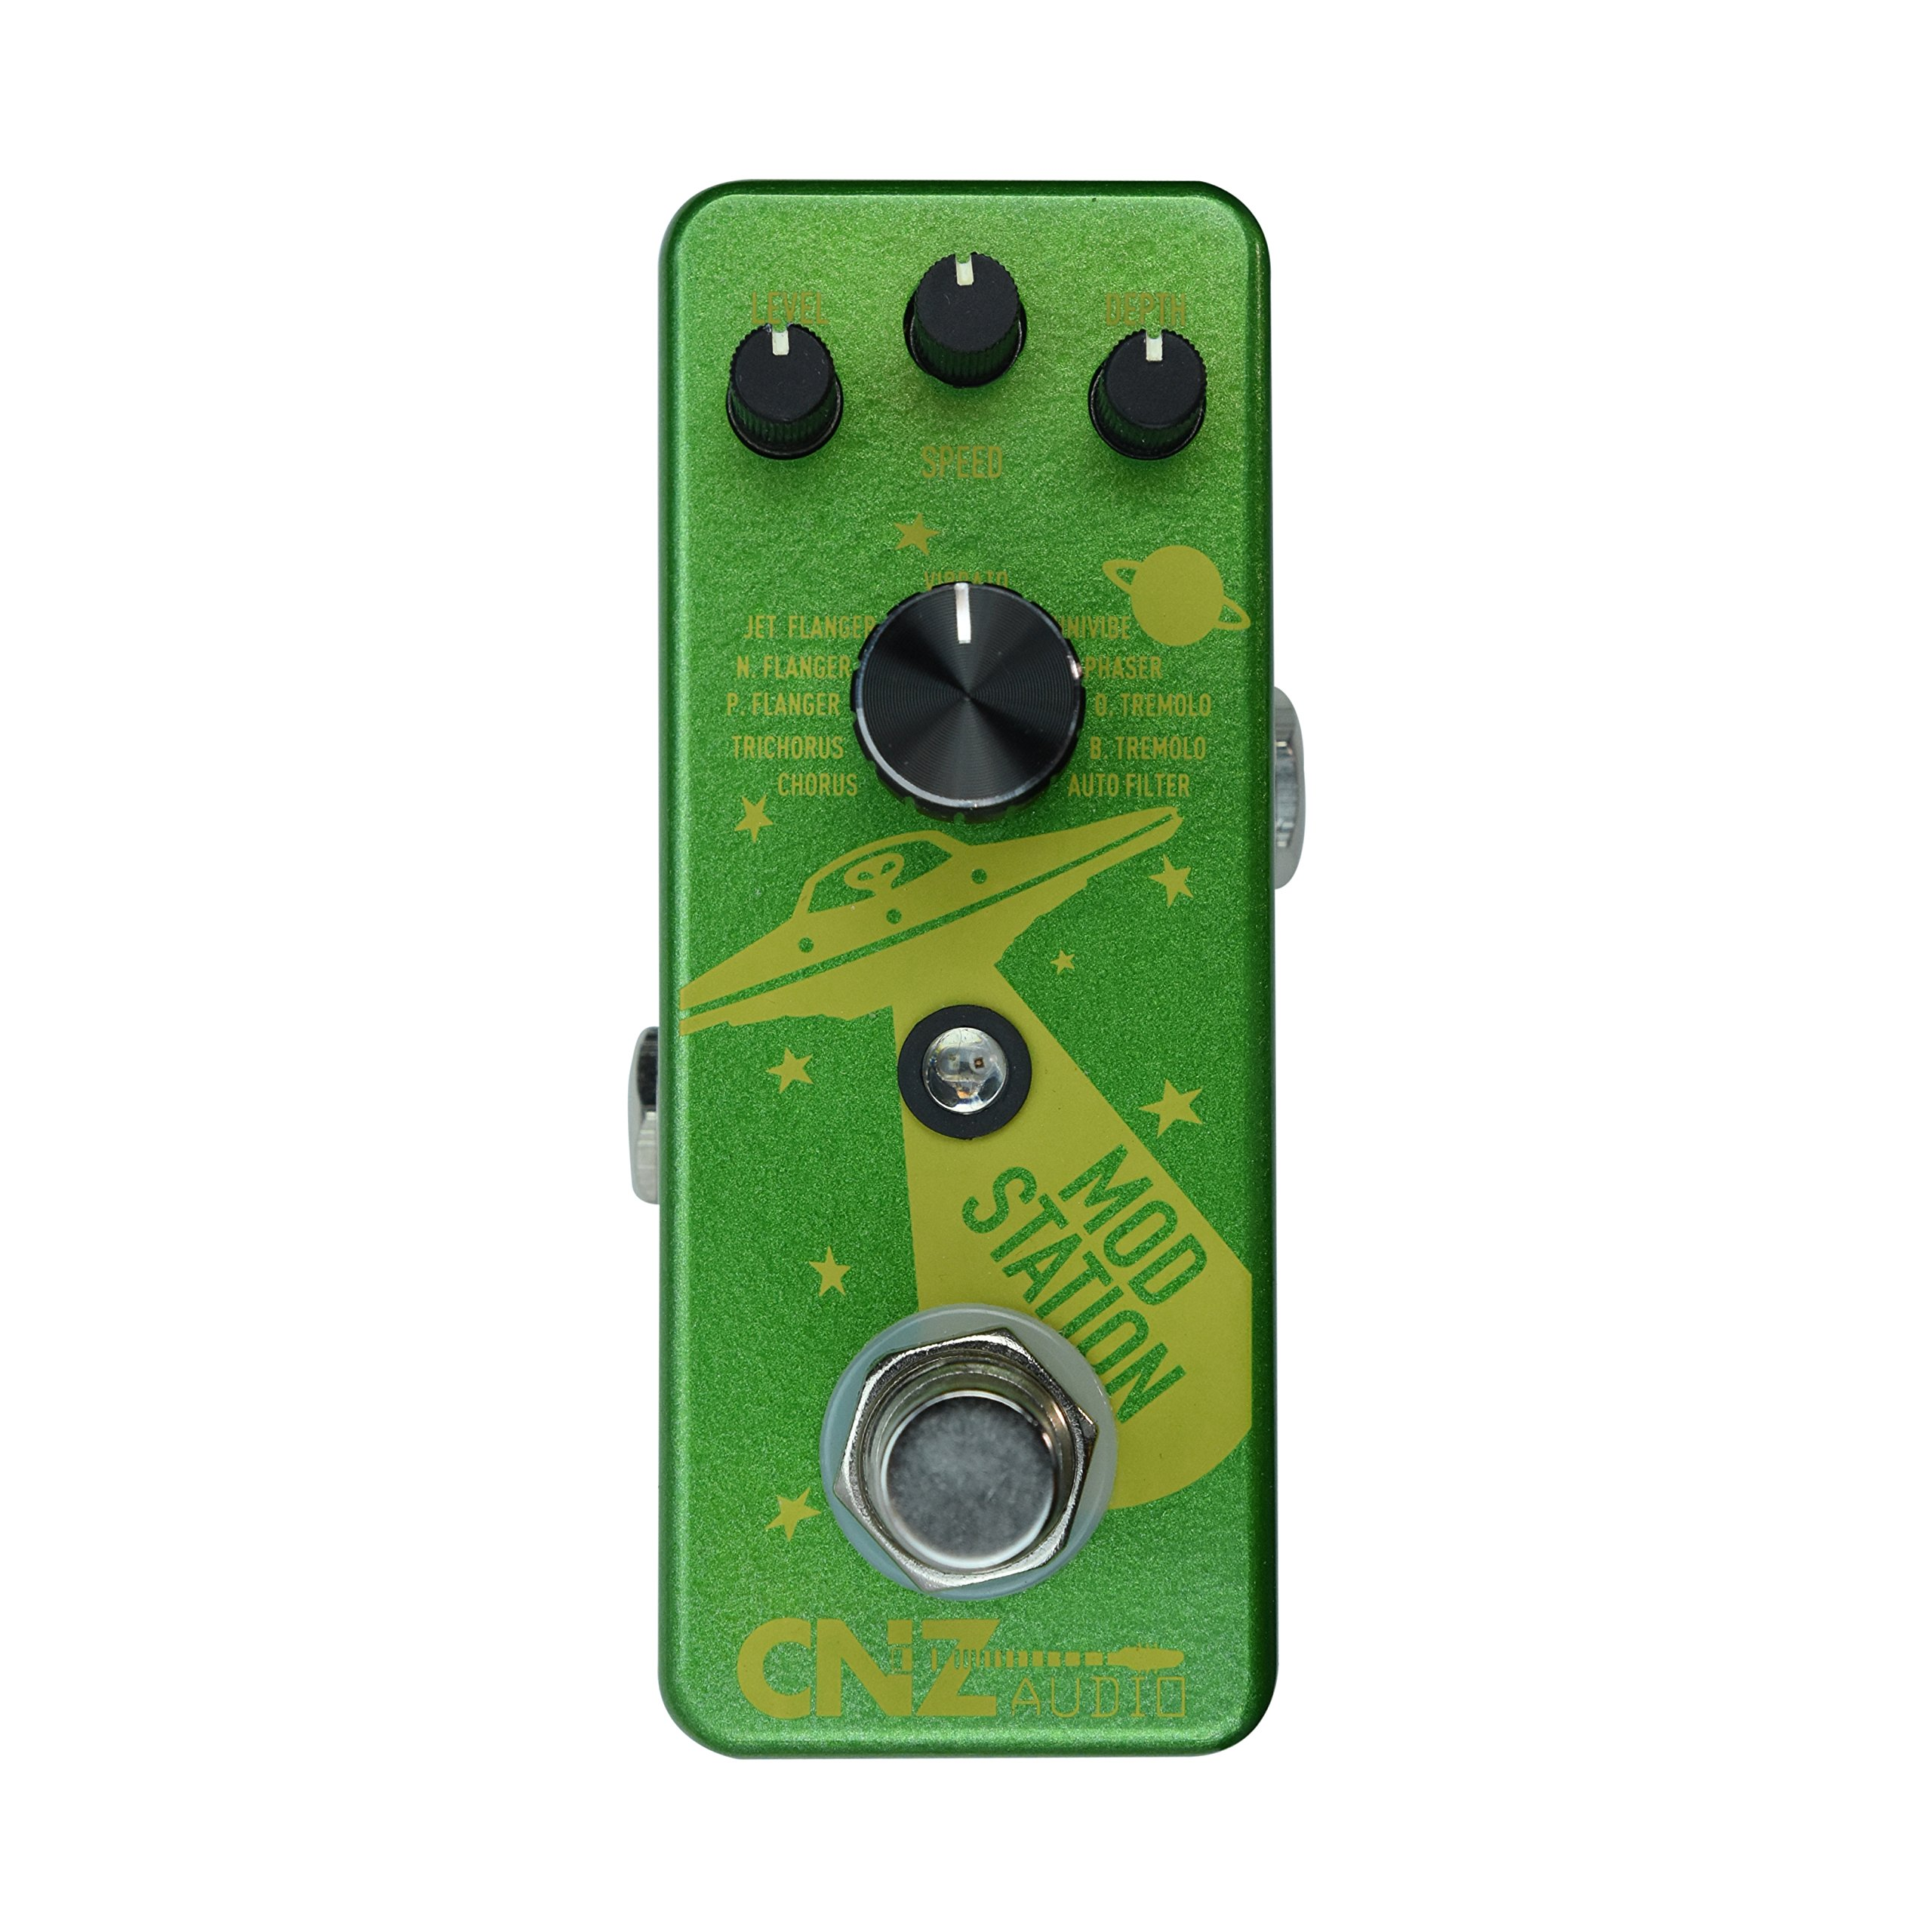 CNZ Audio Mod Station 11 Selectable Digital Modulation Guitar Effects Pedal, True Bypass